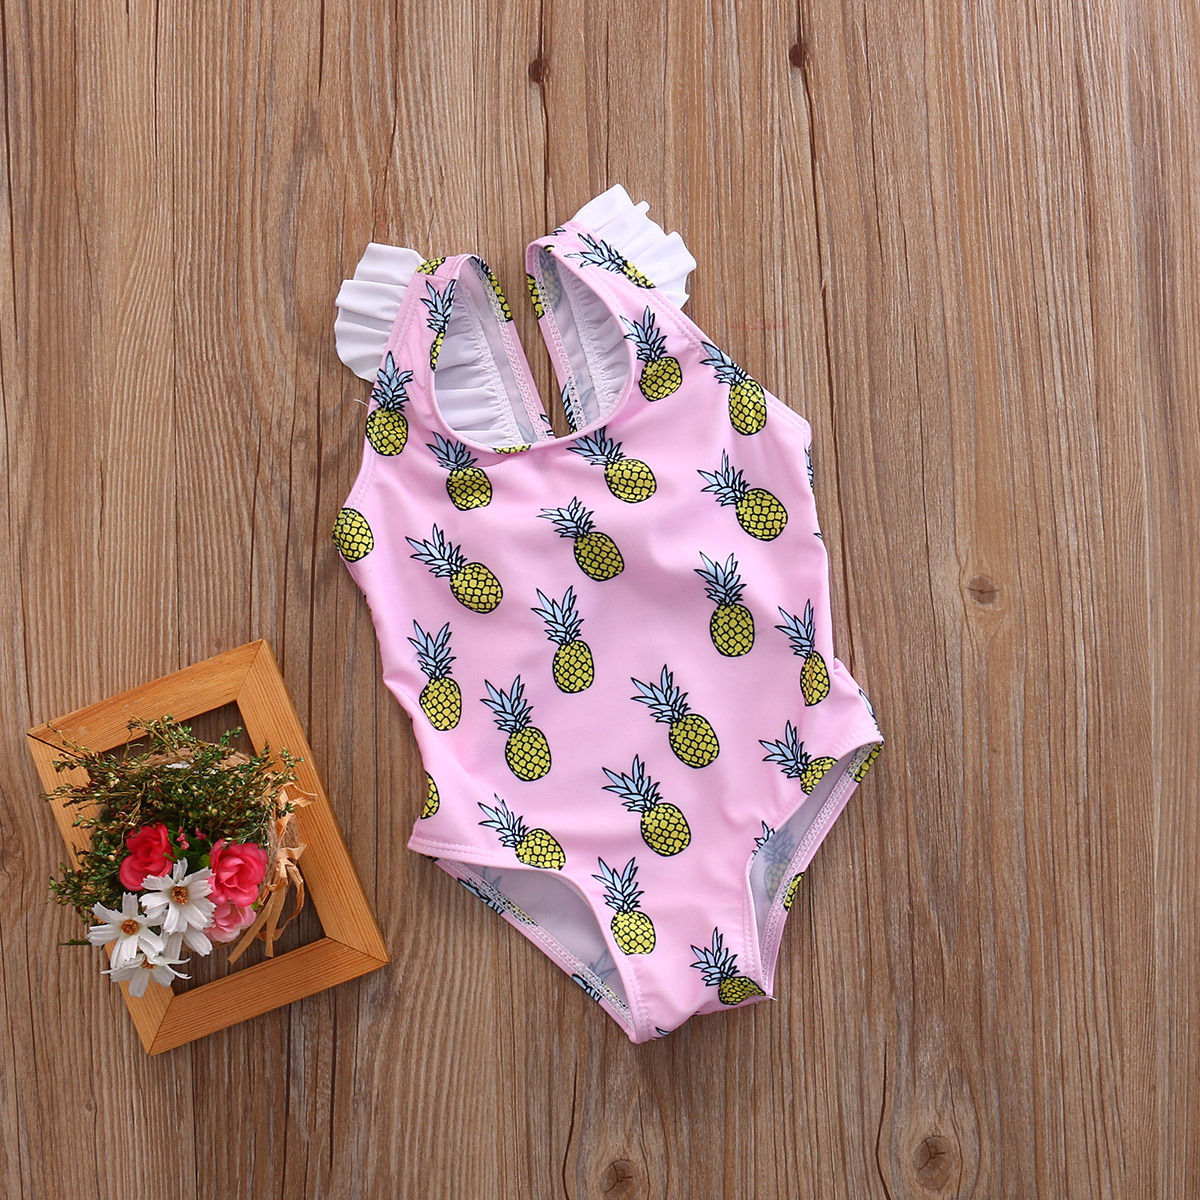 monokini baby bath suit maillot de bain femme 0 4 years children ...